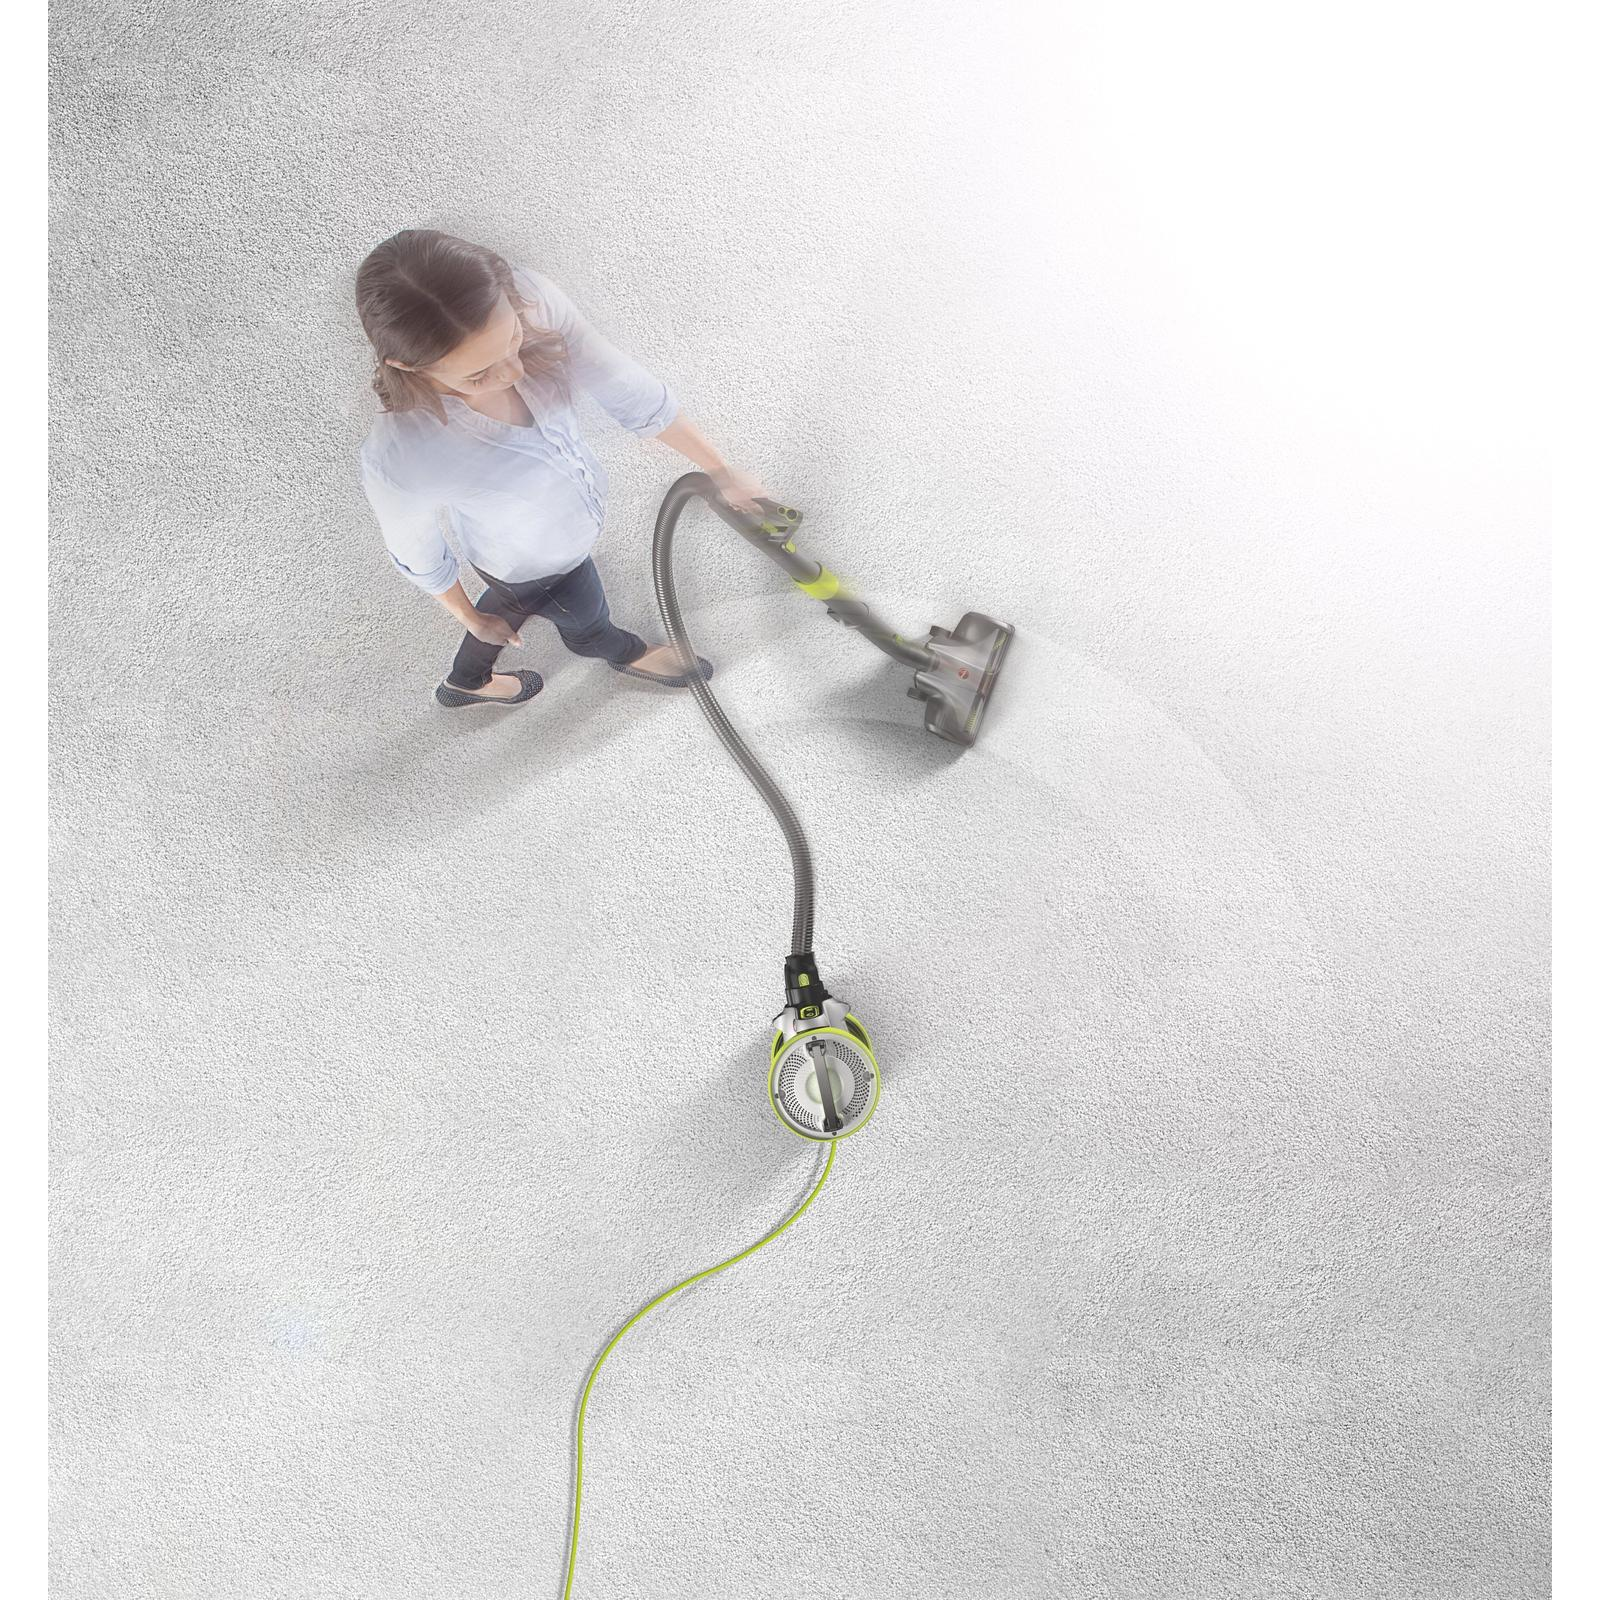 New Hoover Revolve Multi Position Bagless Corded Canister